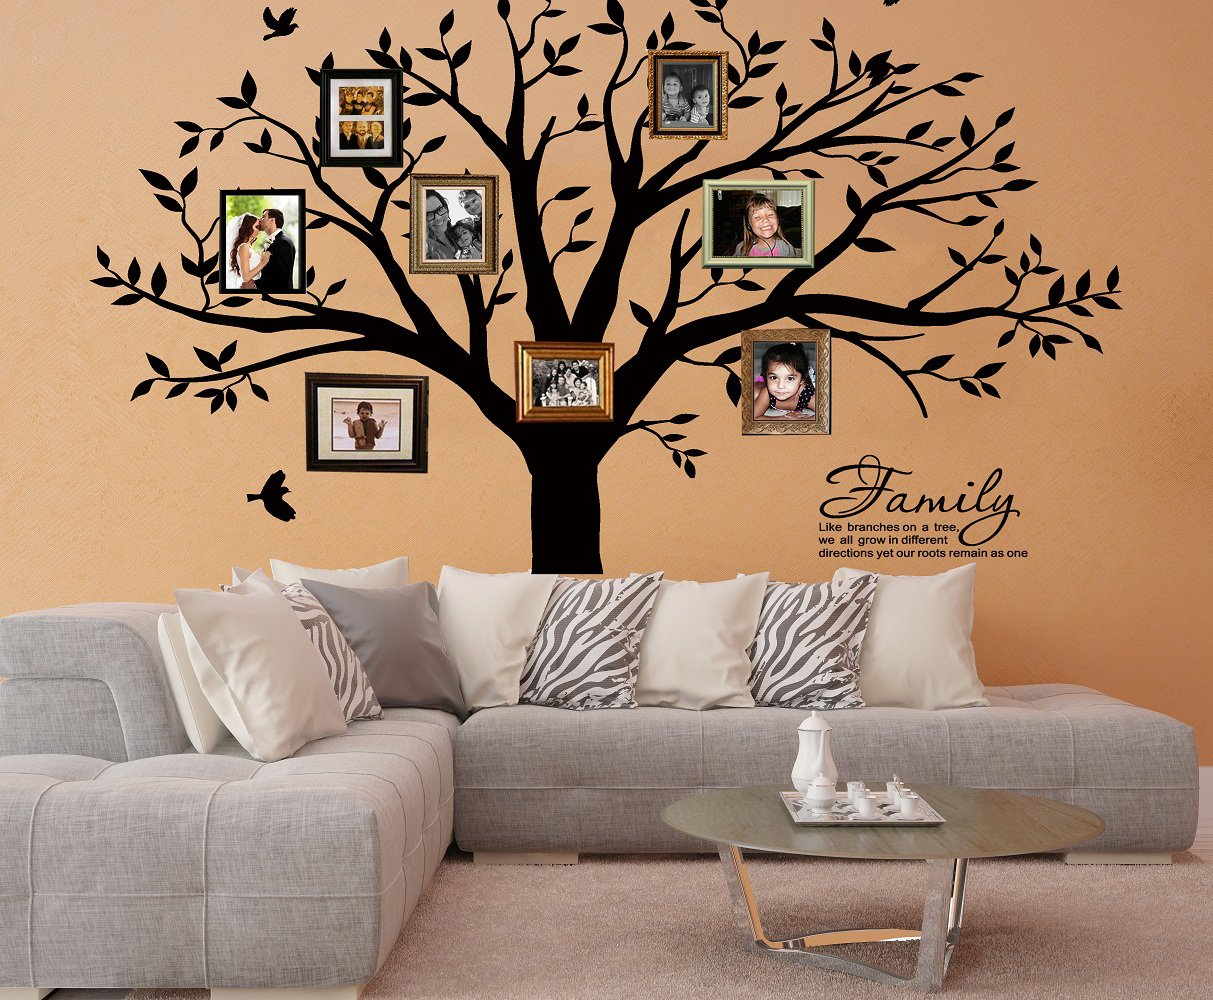 LSKOO Large Family Tree Wall Decal With Family Llike Branches on a Tree Wall Decals Wall Sticks Wall Decorations for Living Room (Black) by LSKOO (Image #7)